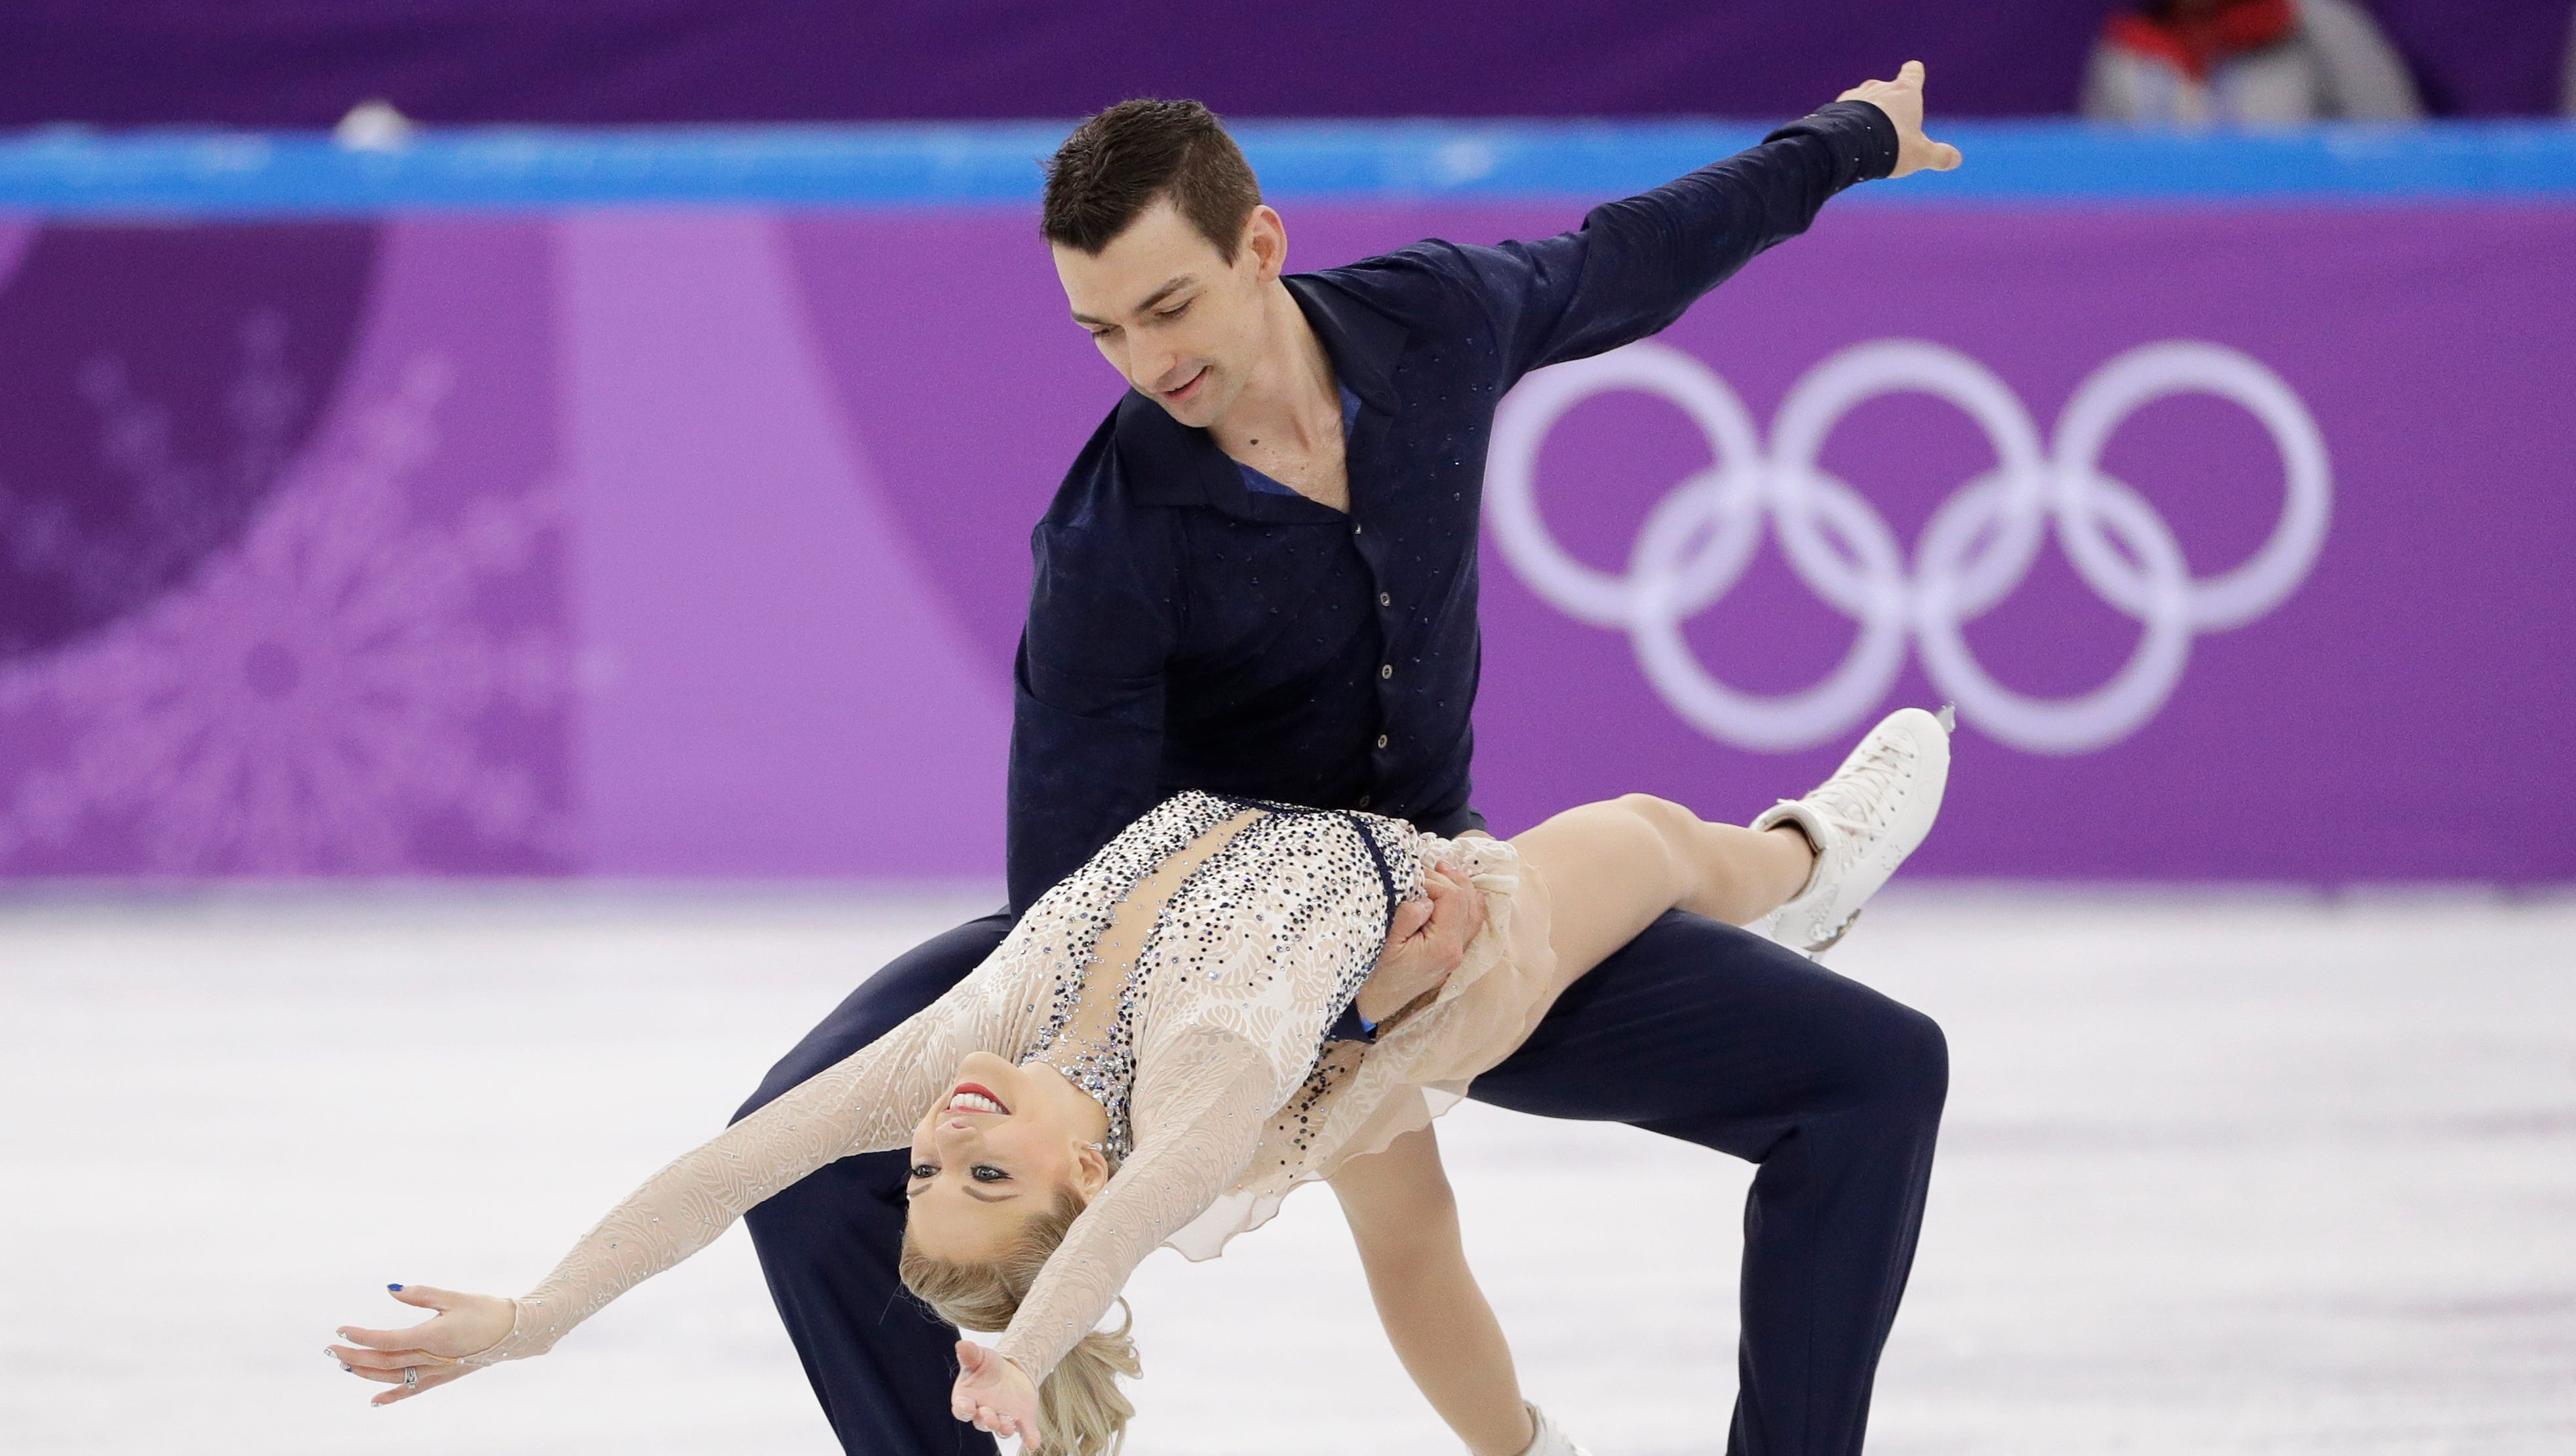 Alexa Scimeca Knierim and Chris Knierim at the 2018 Winter Olympics in Gangneung, South Korea. For the season following an Olympics, Skate America certainly is packed with top U.S. competitors. The six-event Grand Prix series begins in Everett on Friday.